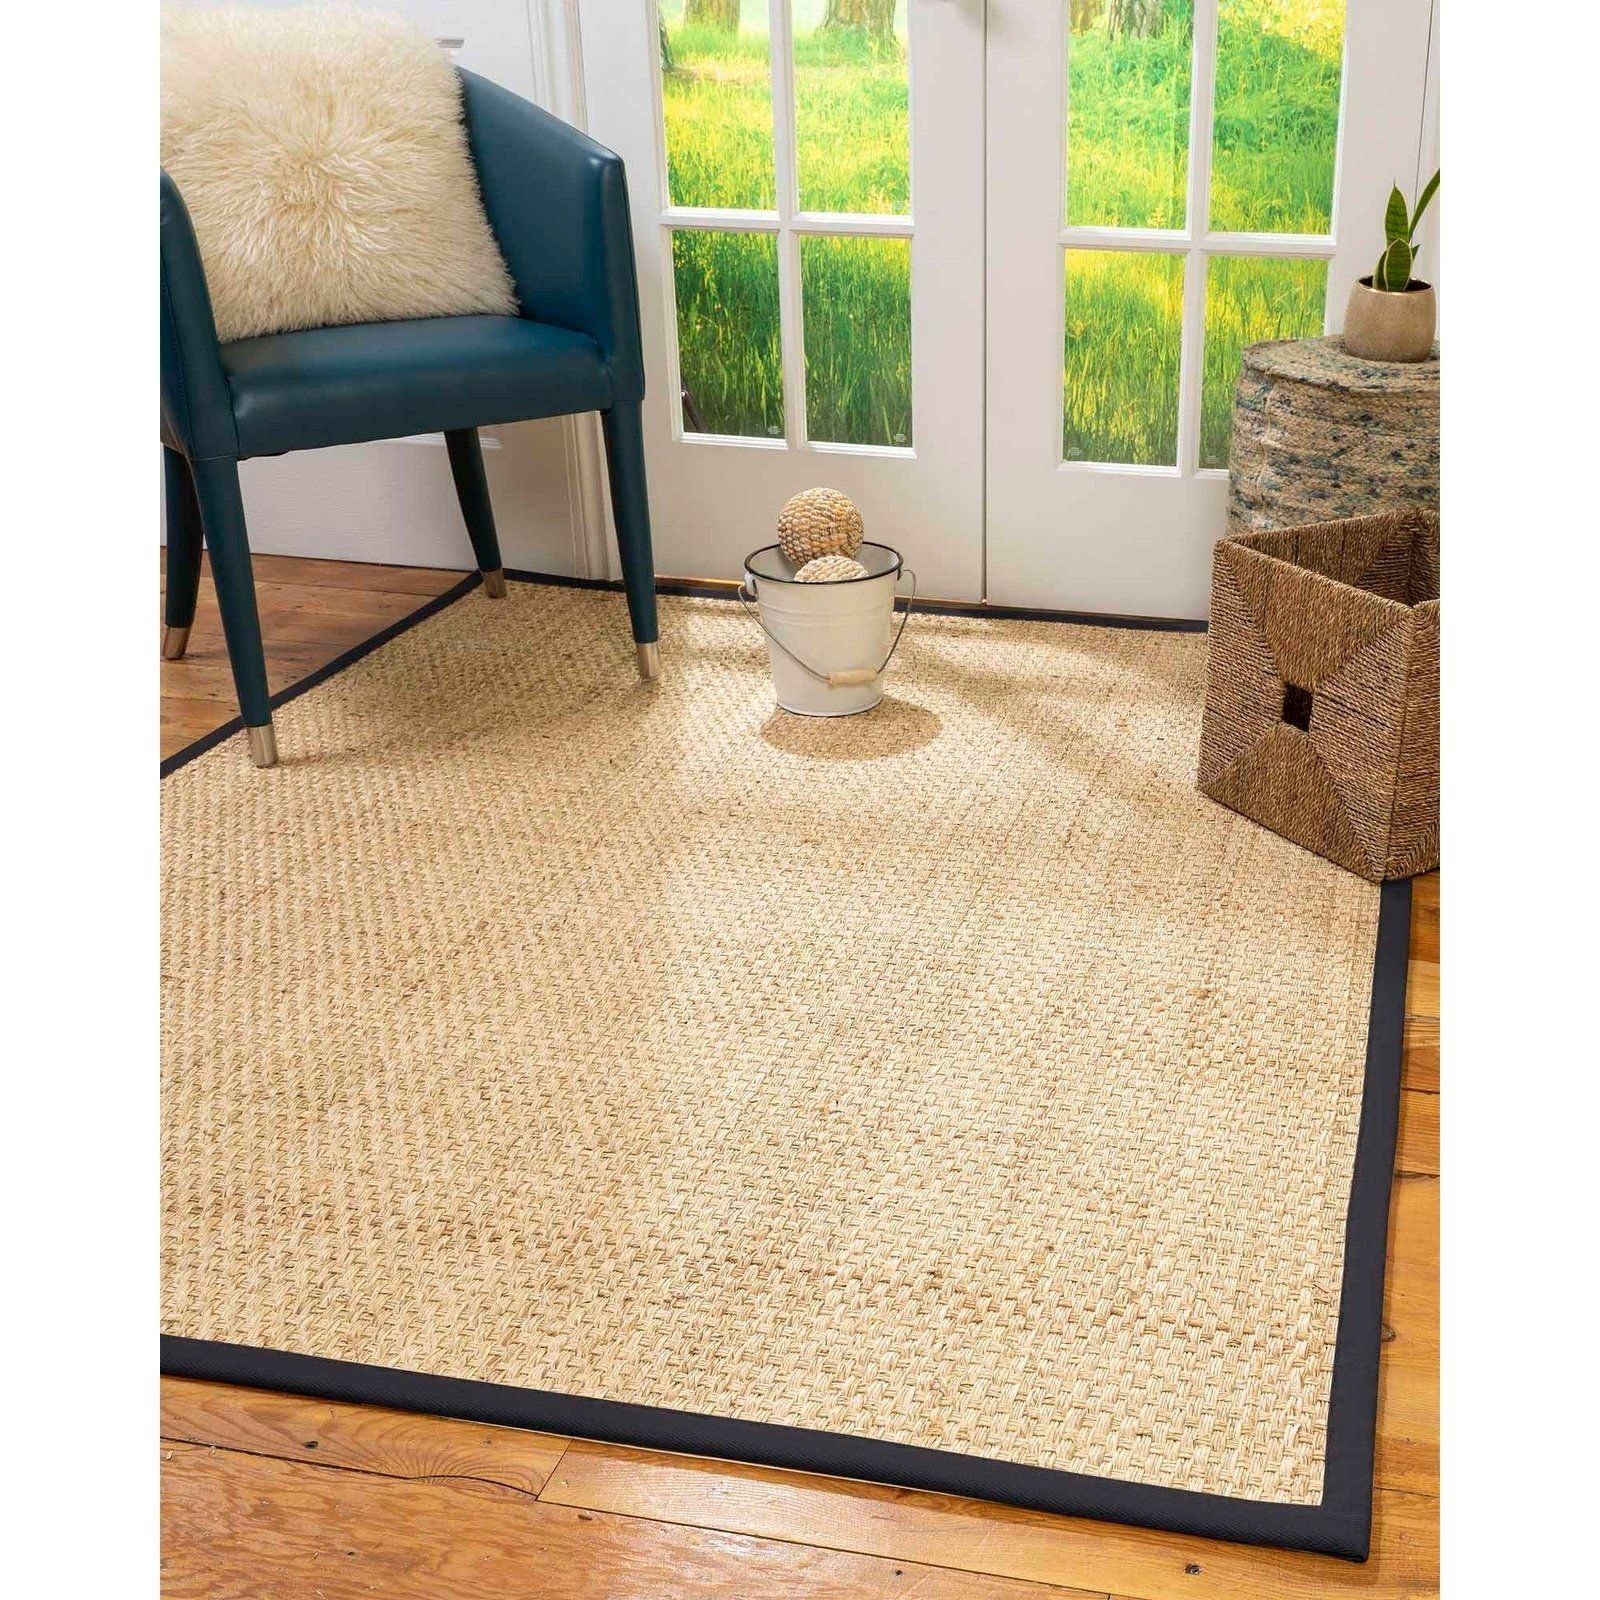 Natural Area Rugs 100 Natural Fiber Handmade Miami Natural Seagrass Rug 10 Square Midnight Blue Border Ivory Brown Area Rugs Natural Area Rugs Area Rugs